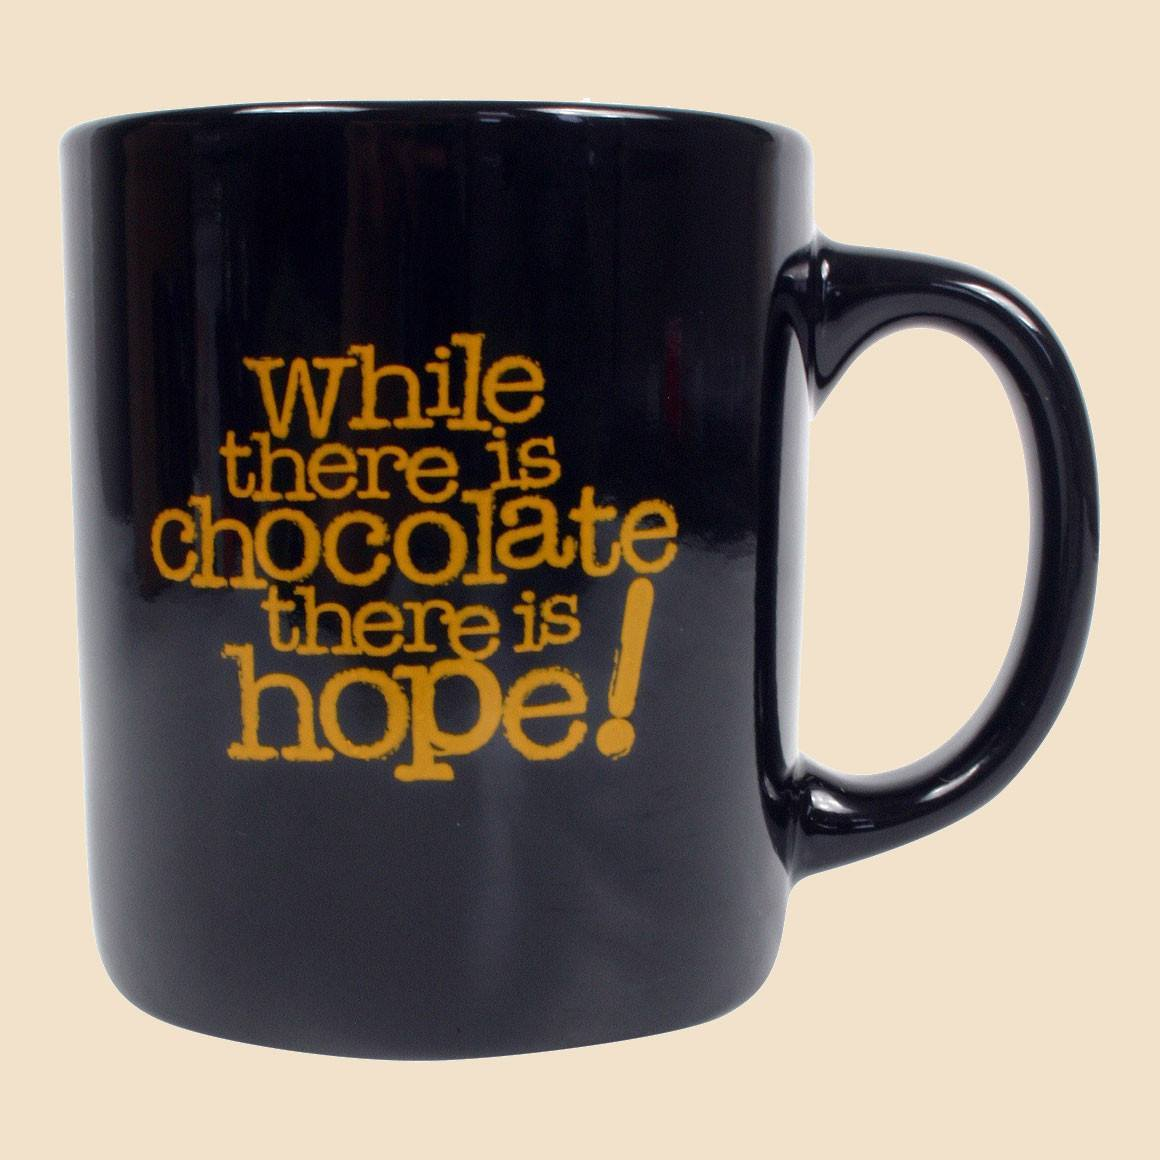 While there is chocolate there is hope mug